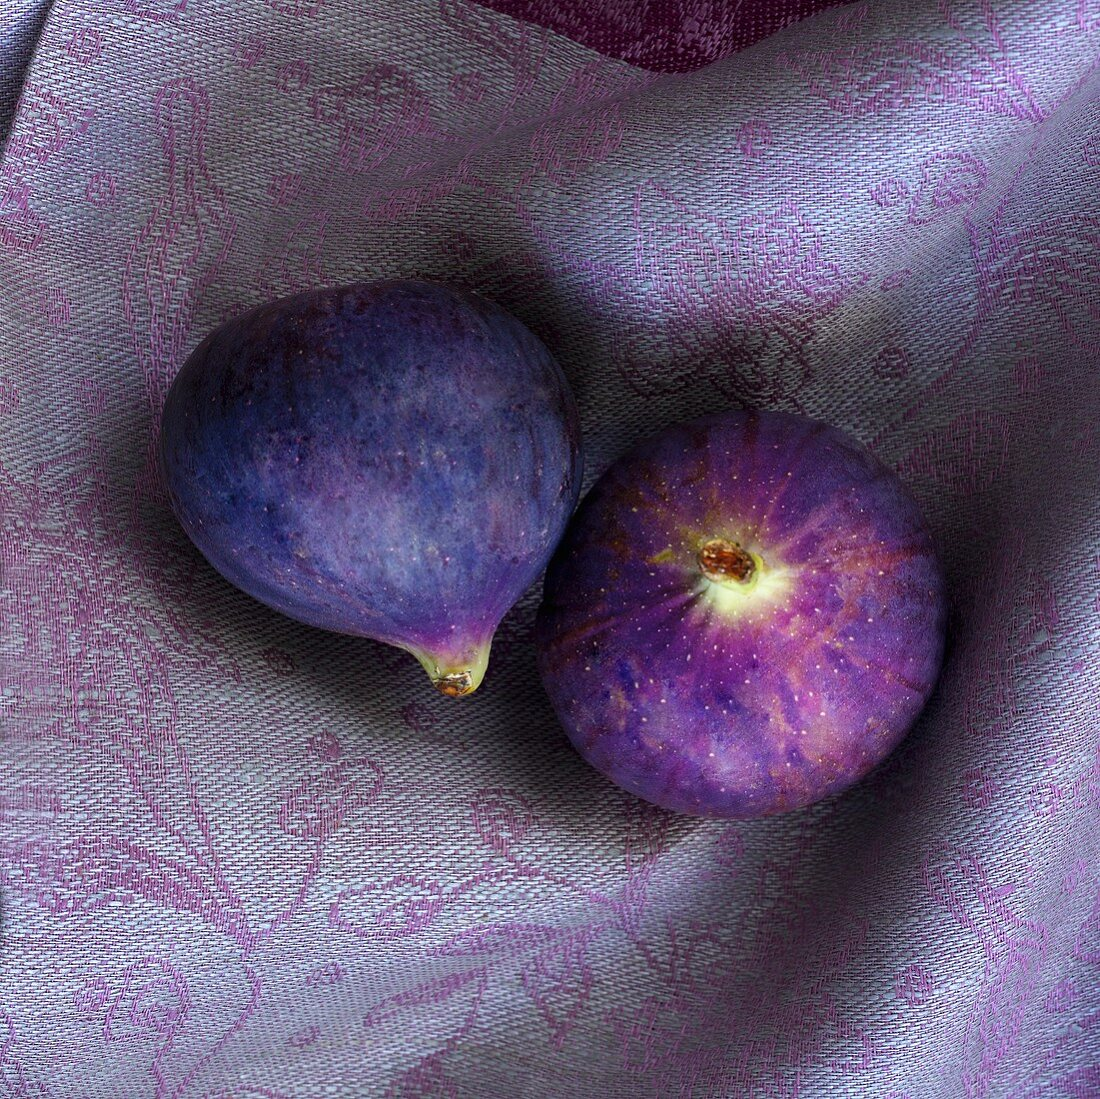 Two figs in a cloth